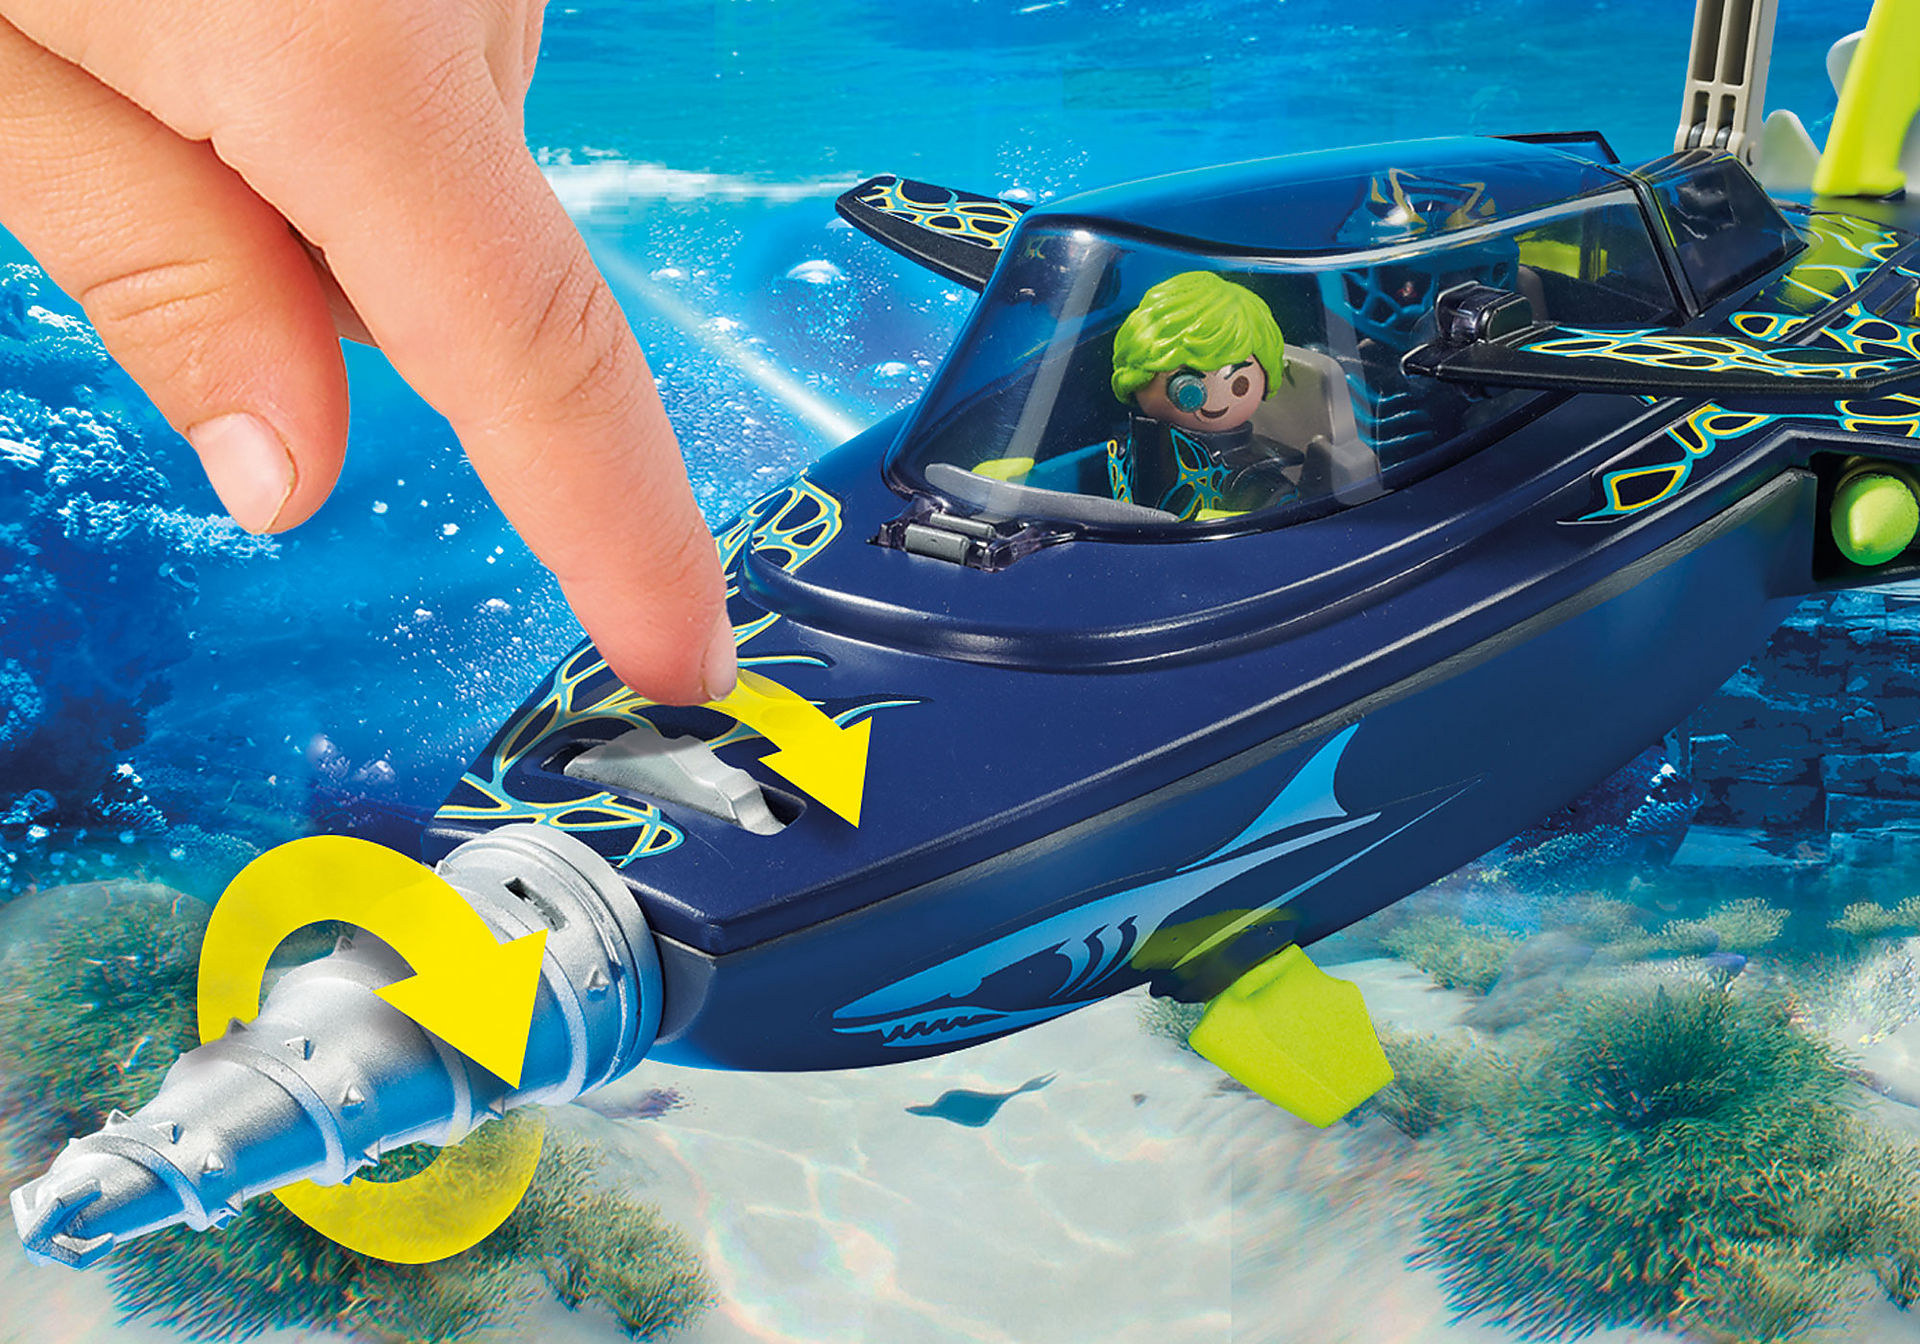 http://media.playmobil.com/i/playmobil/70005_product_extra4/TEAM S.H.A.R.K. Destroyer med bor